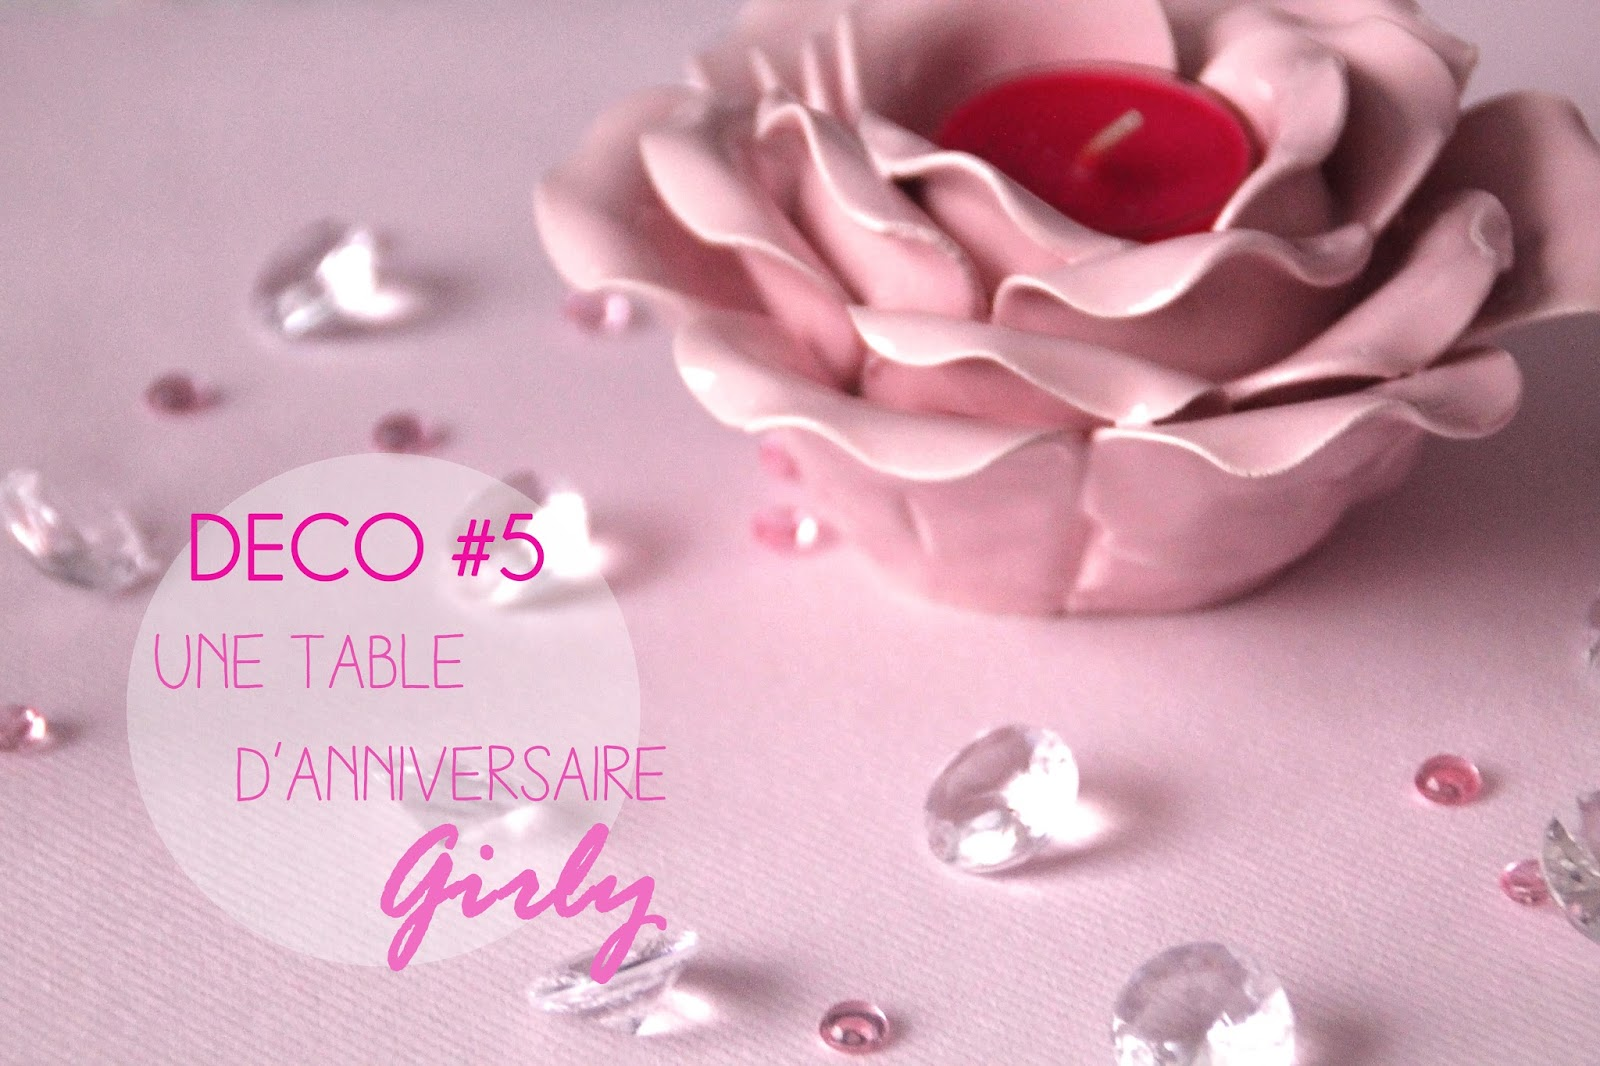 Decoration Anniversaire Girly Deer Bambi Déco 5 Une Mini Table D Anniversaire Girly